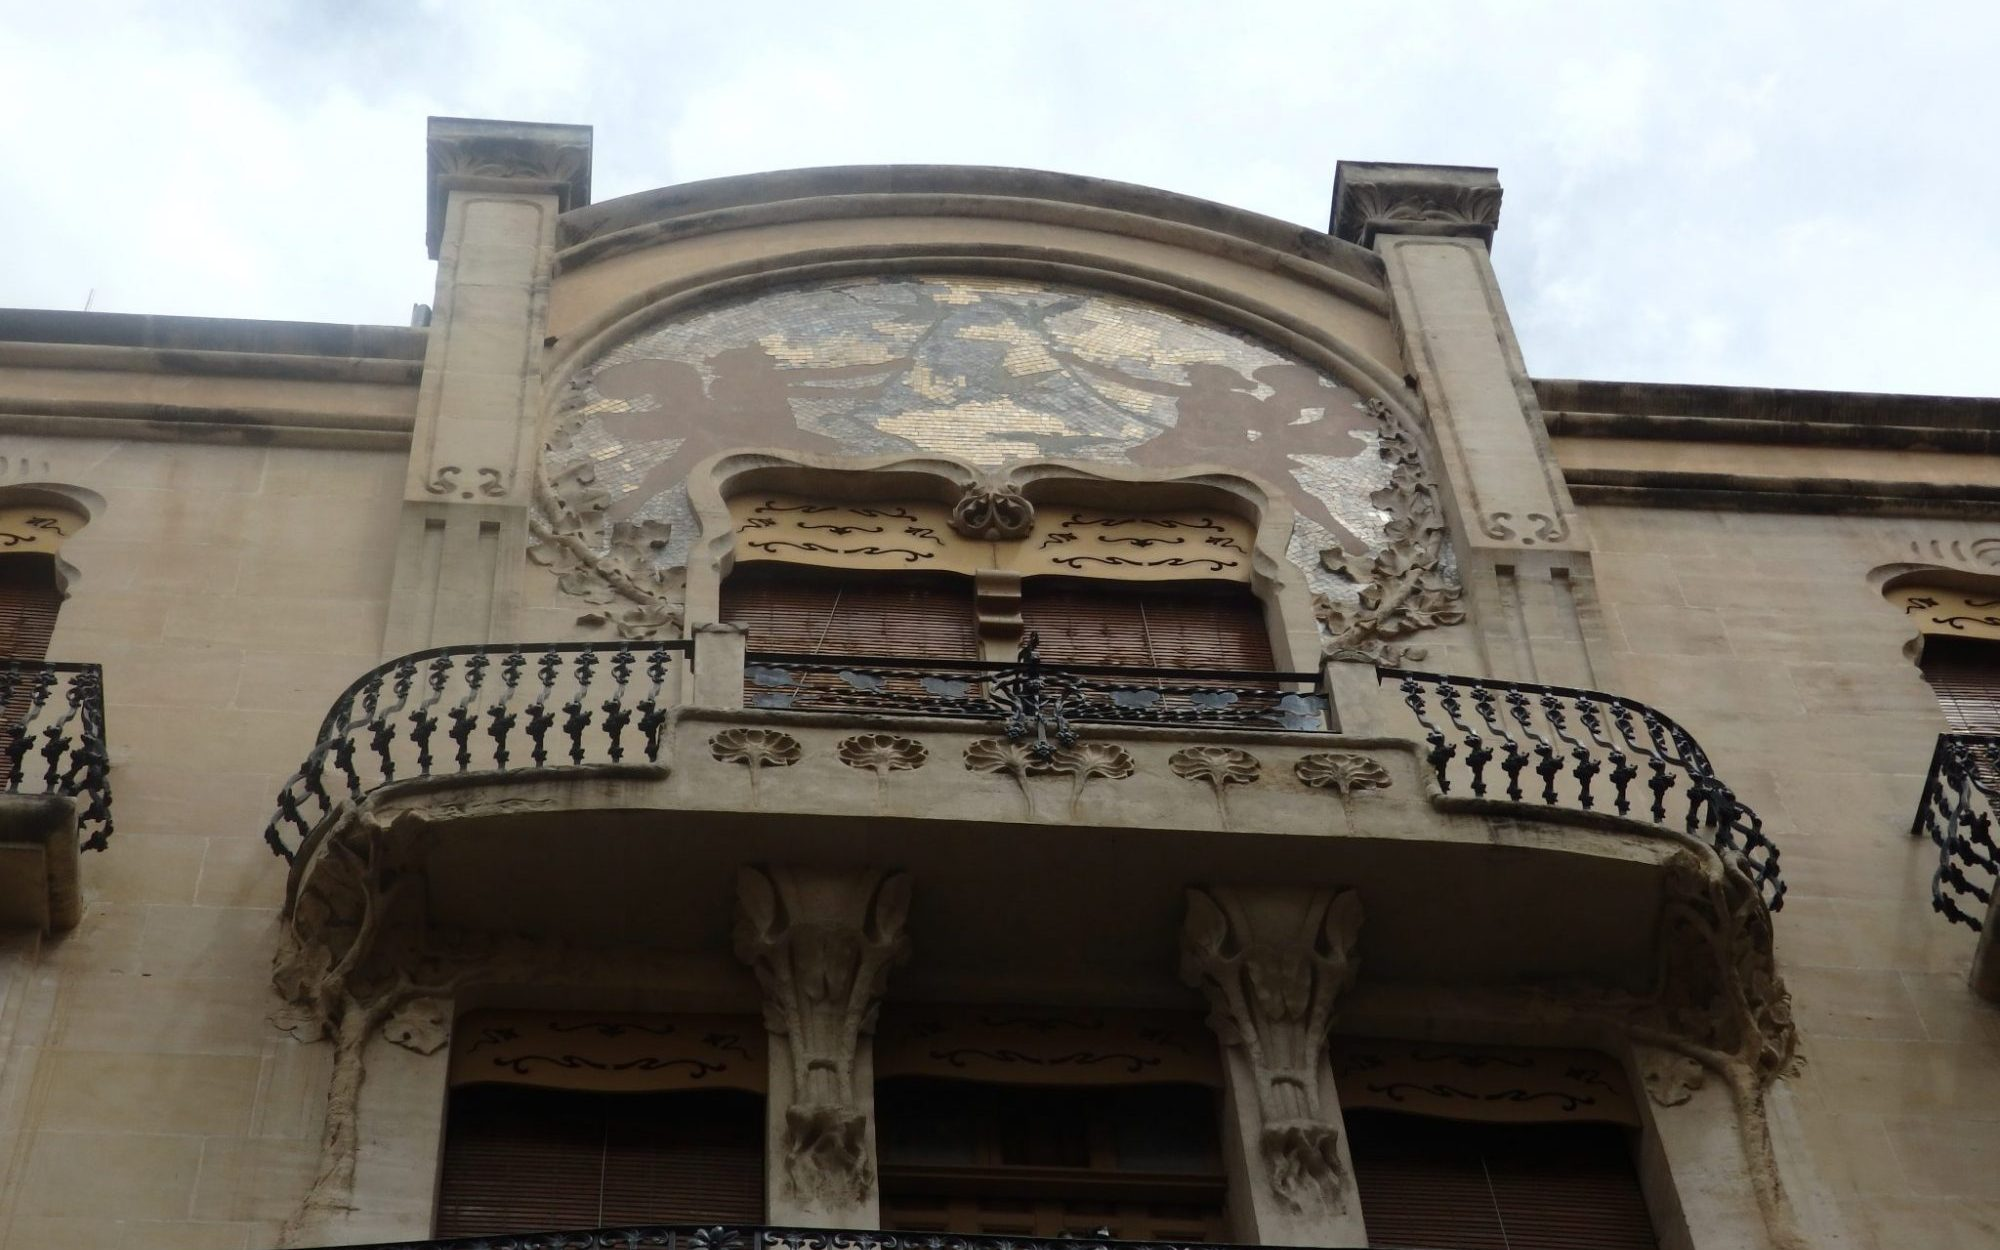 You can see a similarity to Art Nouveau and Jugendstil in the artwork on the facade of this building.